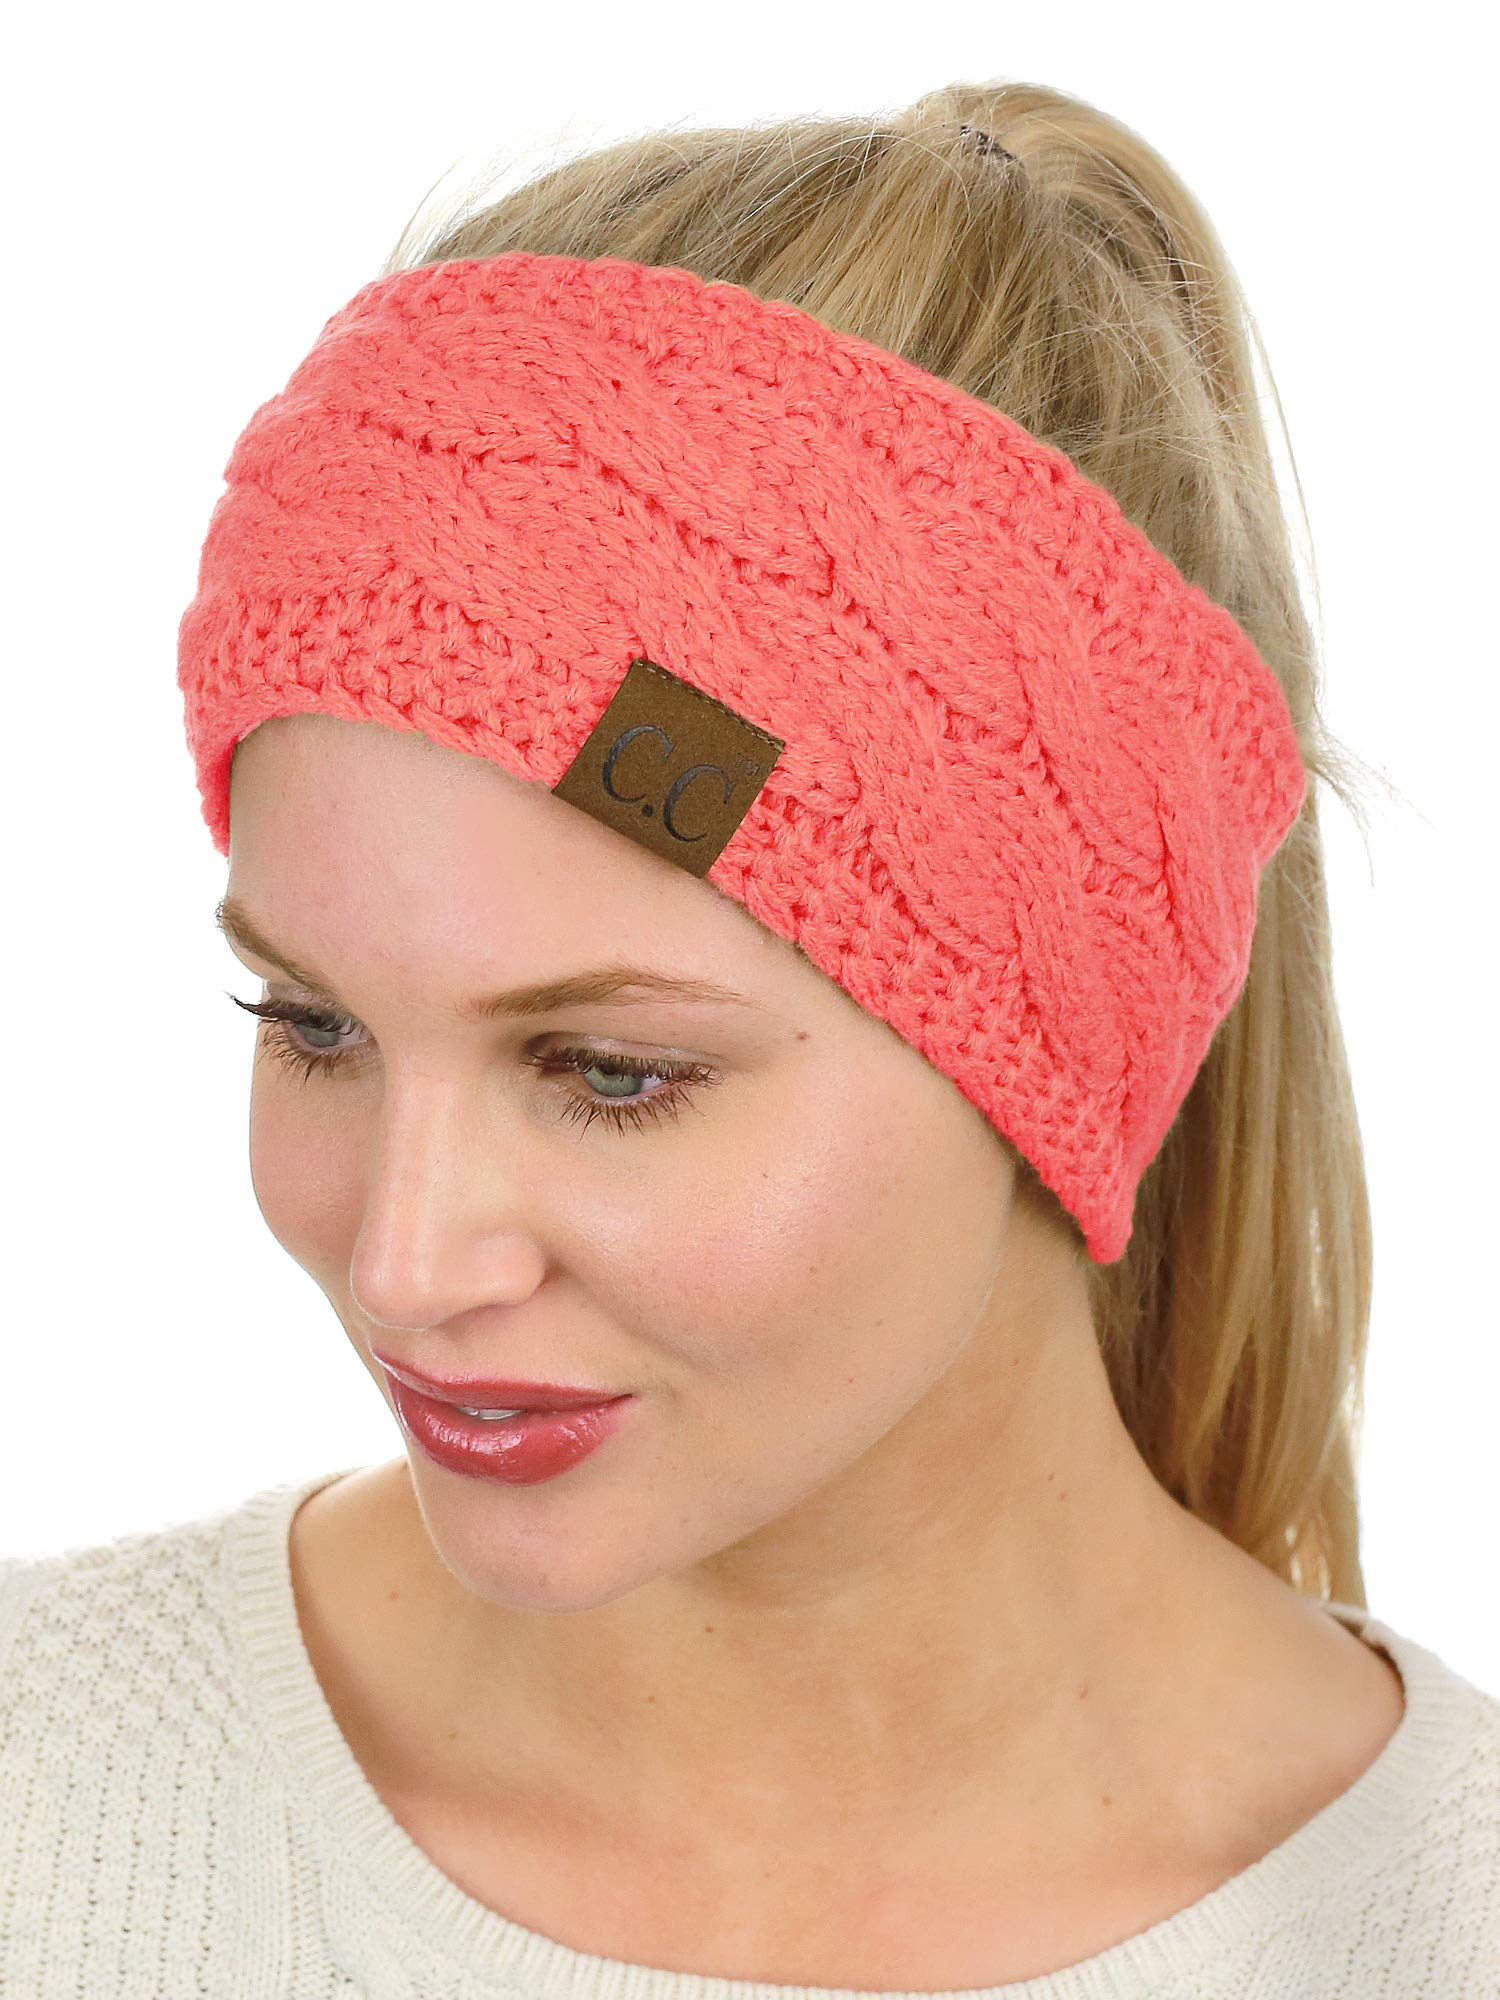 C.C Soft Stretch Winter Warm Cable Knit Fuzzy Lined Ear Warmer Headband, Coral